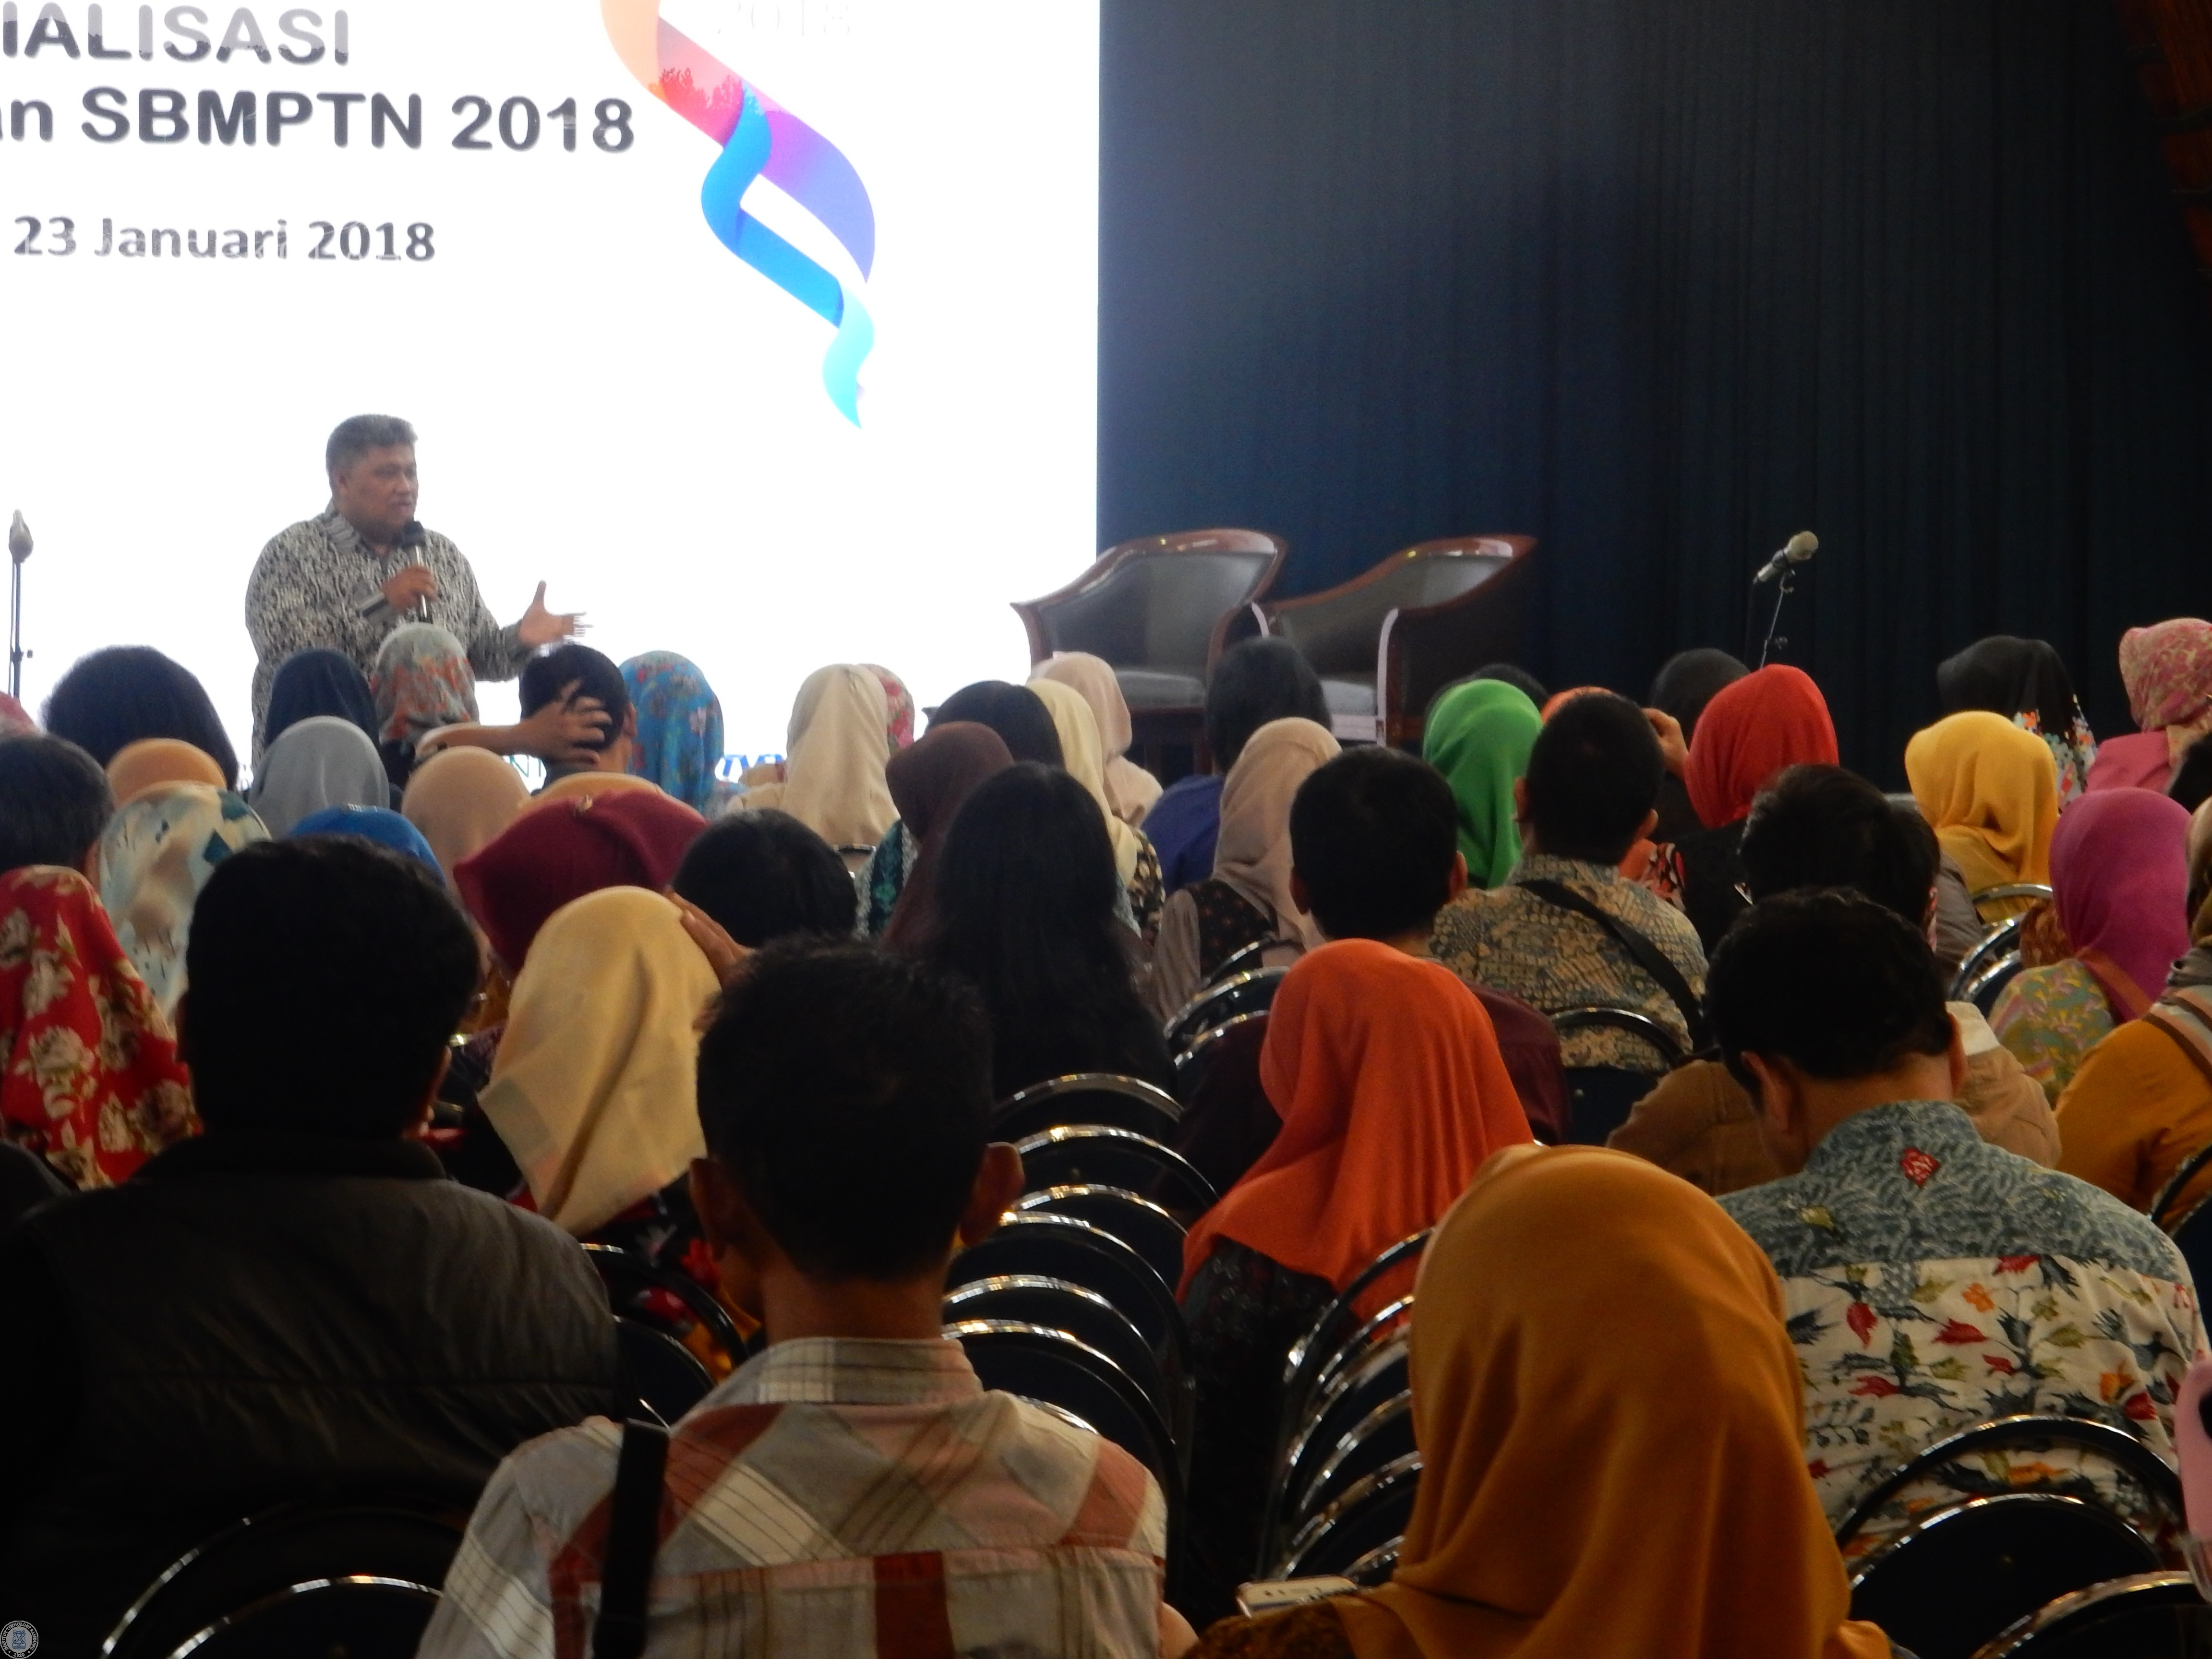 itb-disseminated-information-about-snmptn-and-sbmptn-2018